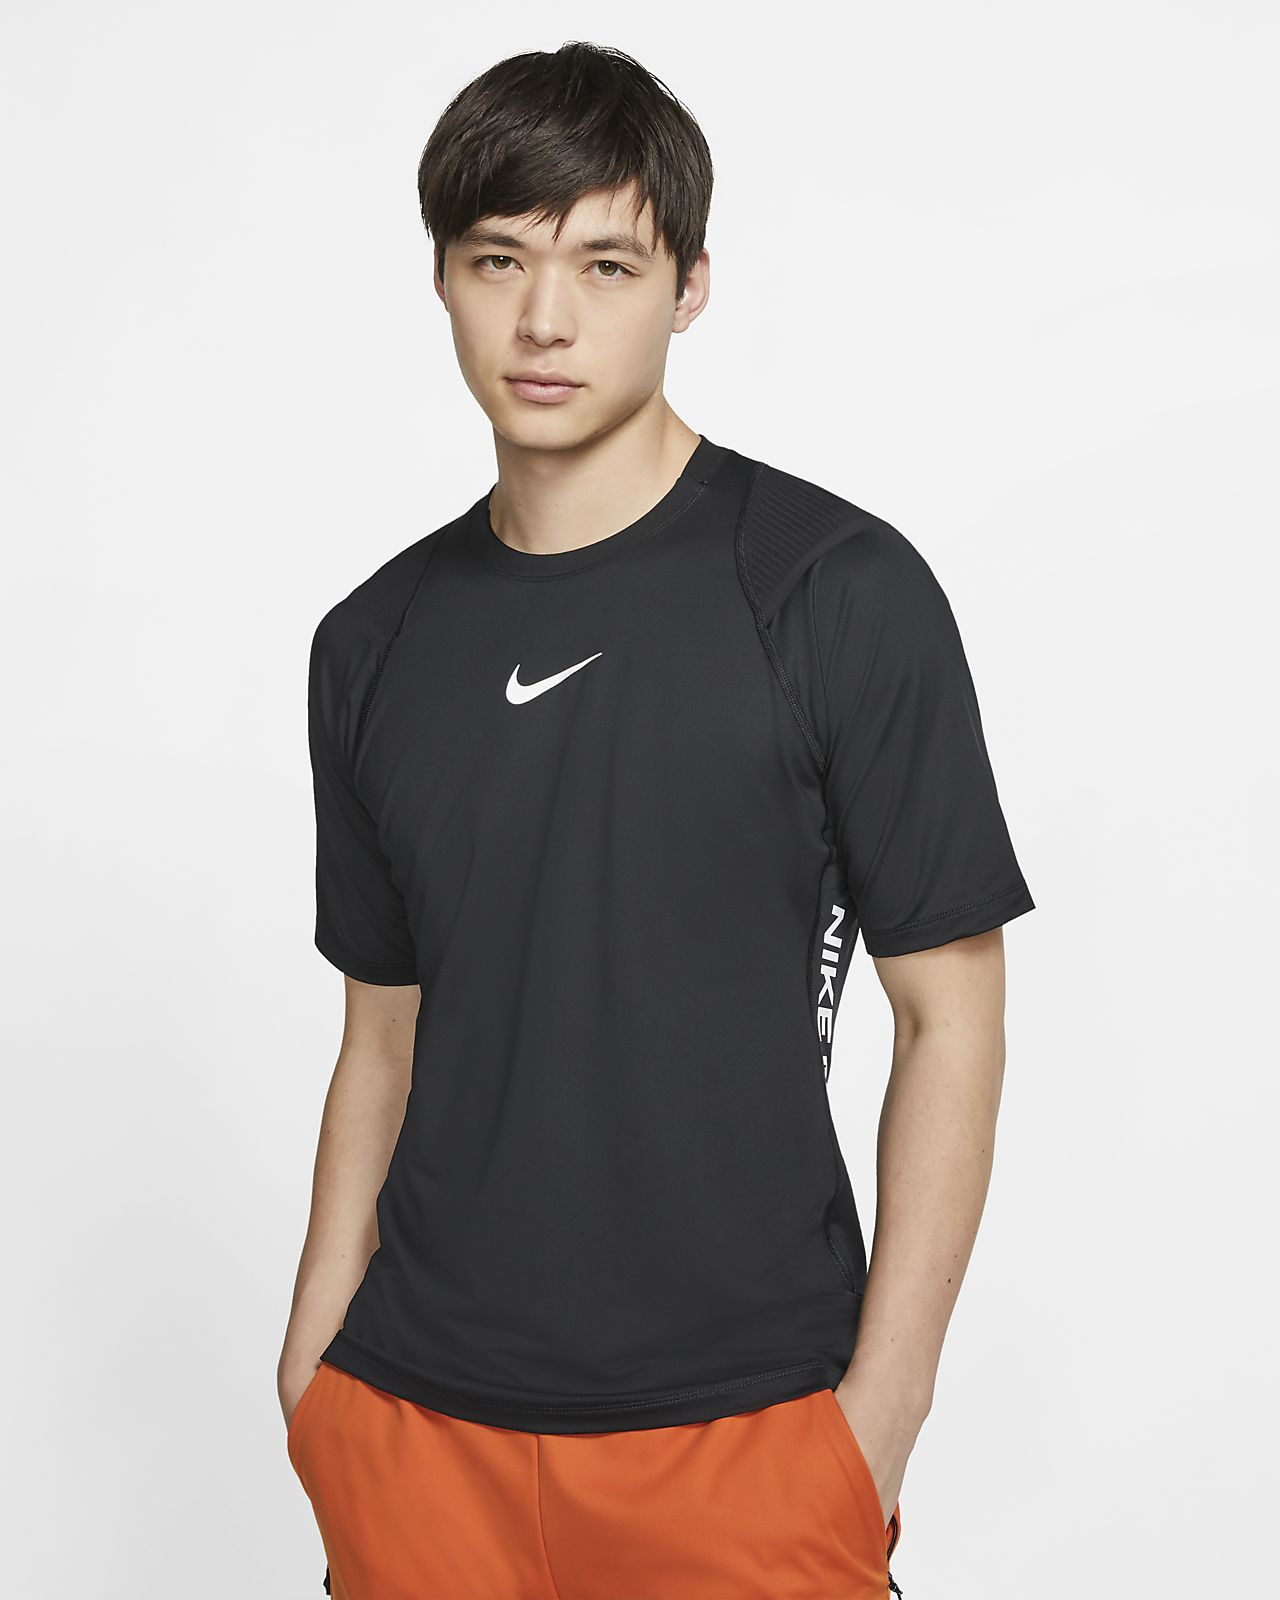 Nike Pro AeroAdapt Men's Short-Sleeve Top